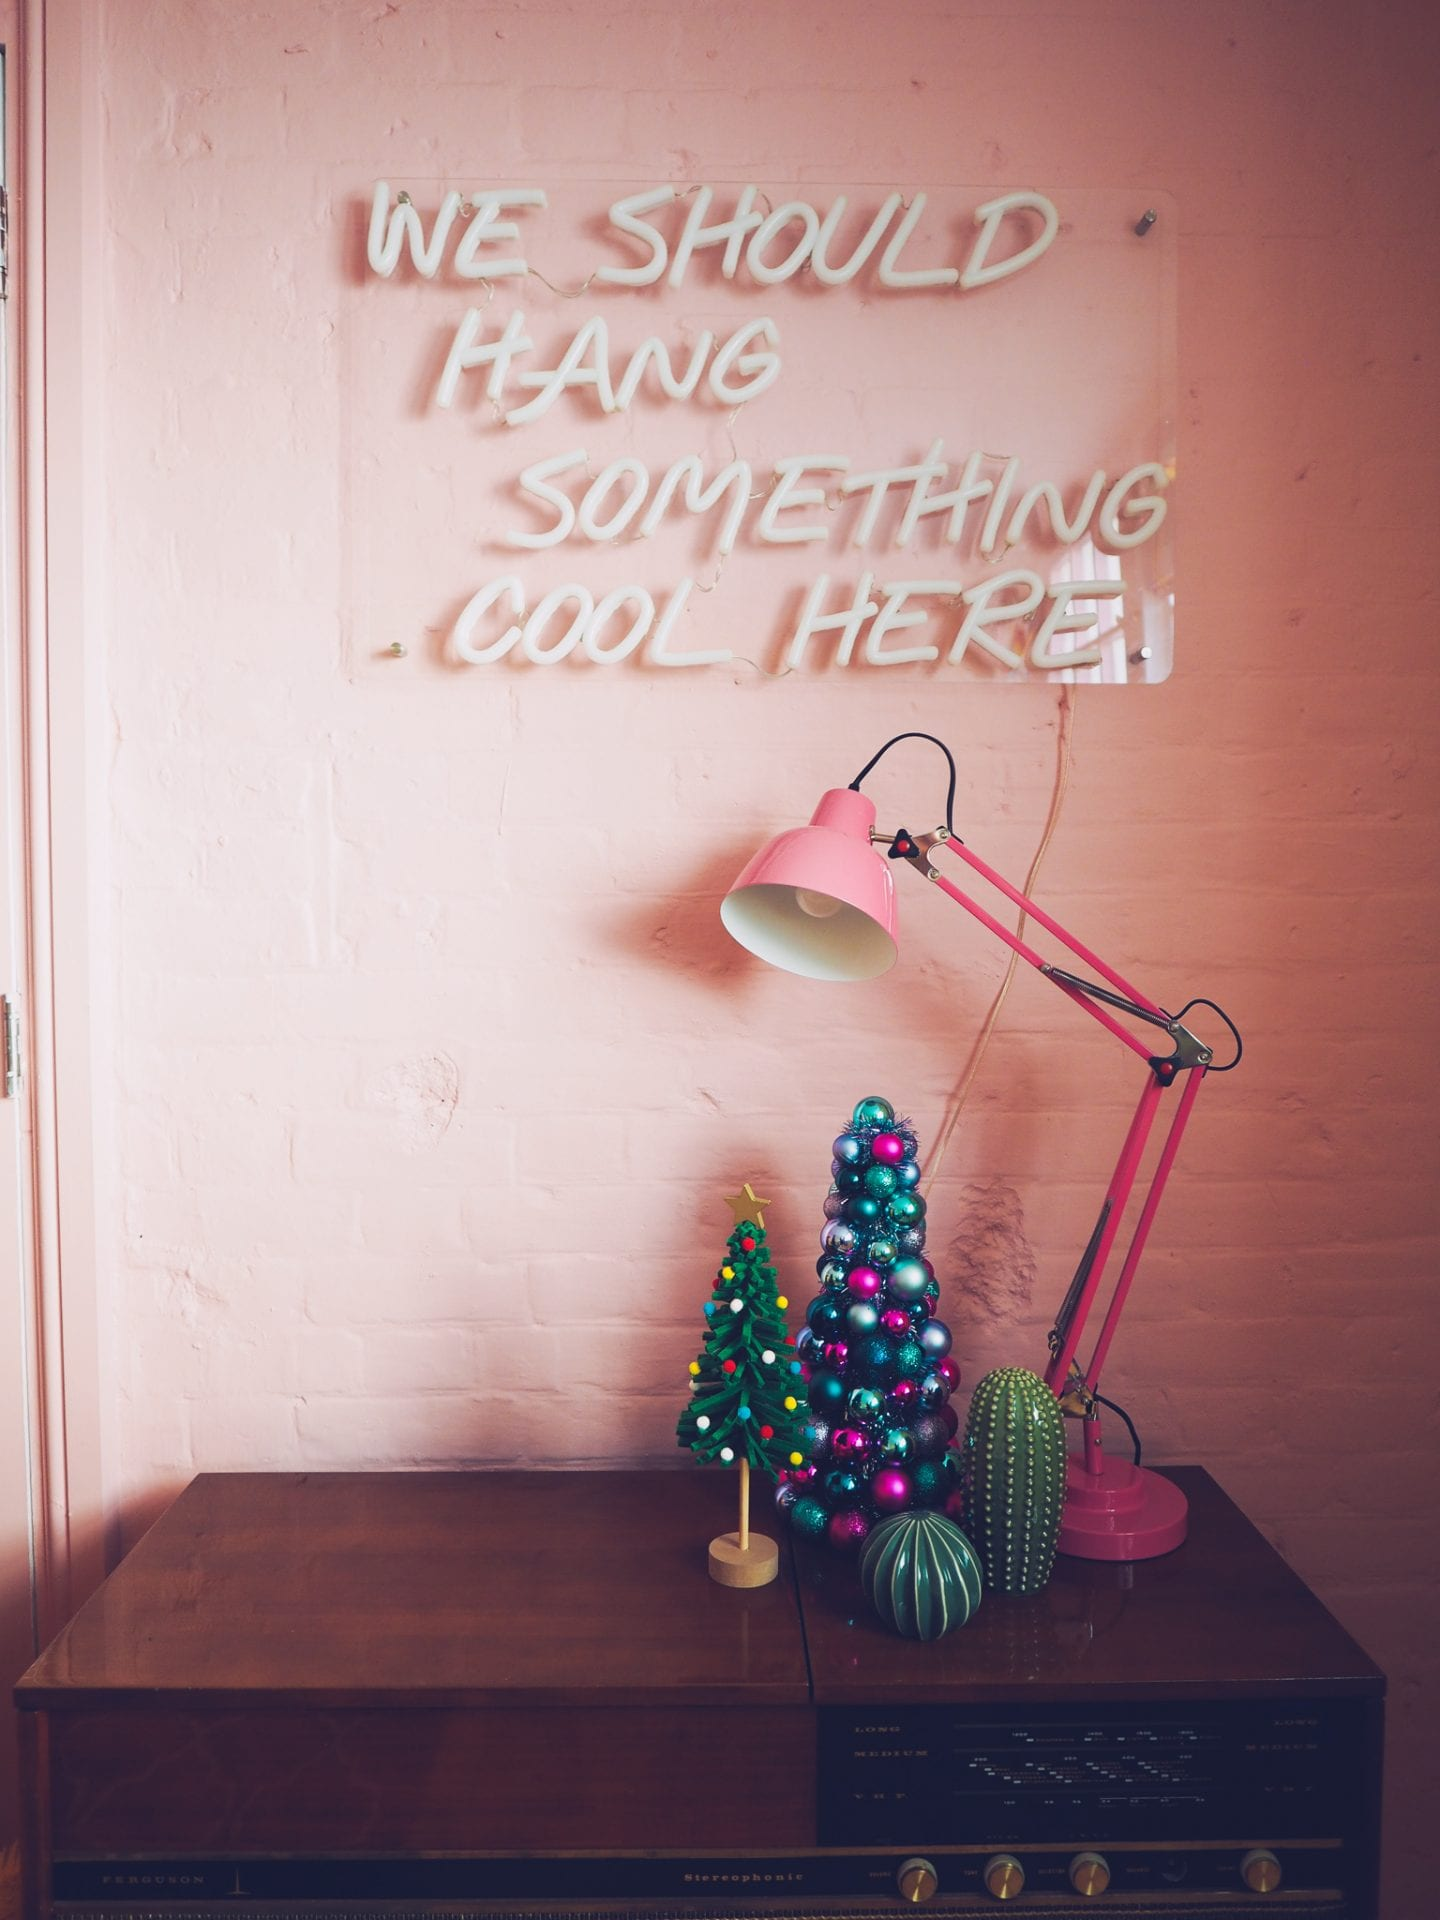 we-should-hang-something-cool-here-neon-sign